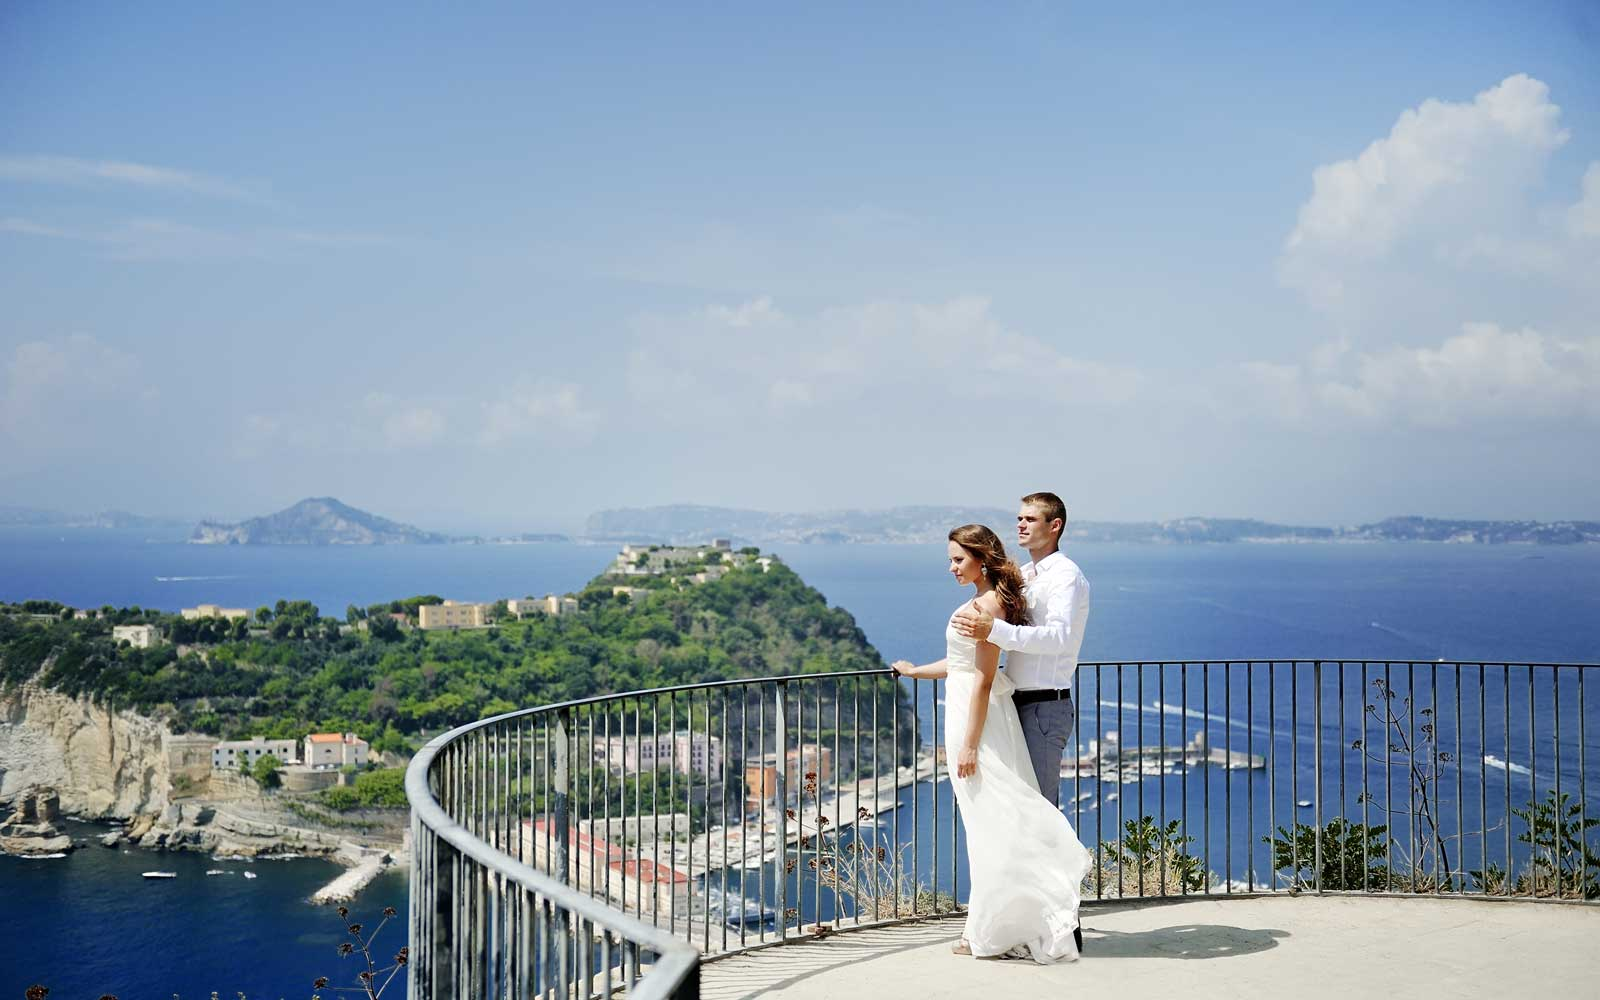 Do You Need to Visit Your Destination Wedding Location Before the Big Day?